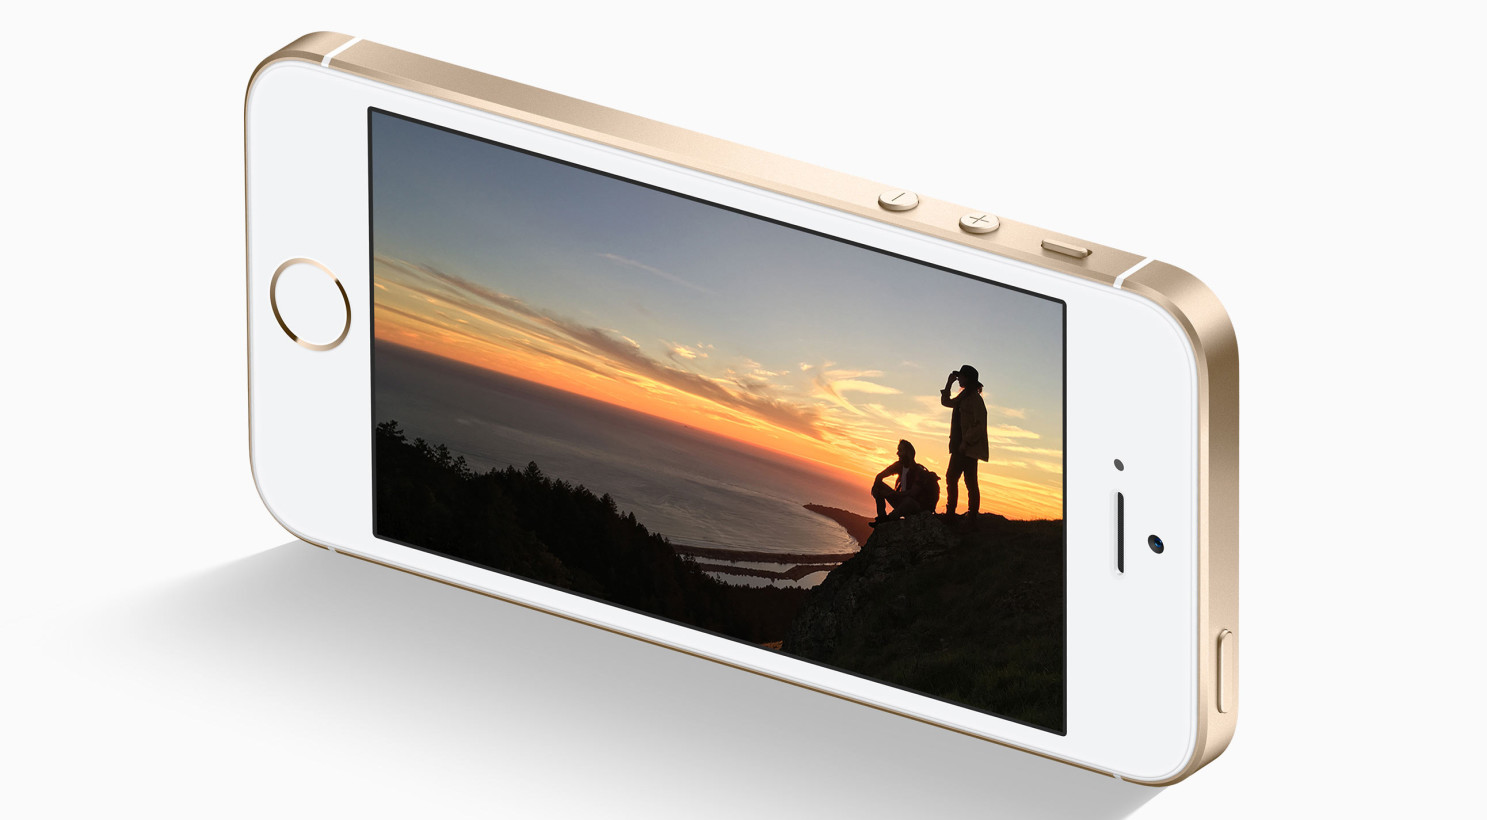 The iPhone SE boasts camera performance similar to the $649 iPhone 6s